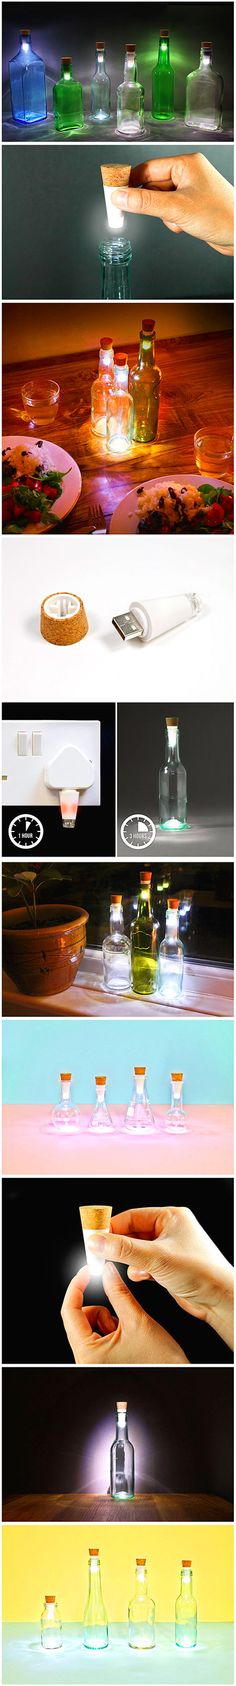 Some of our favorite creative products and inventions are ones that give used objects/trash a second life. The rechargeable bottlelight developed by Suck UK, a home accessory and gift company, turns old empty bottles into beautiful, simple table lamps.